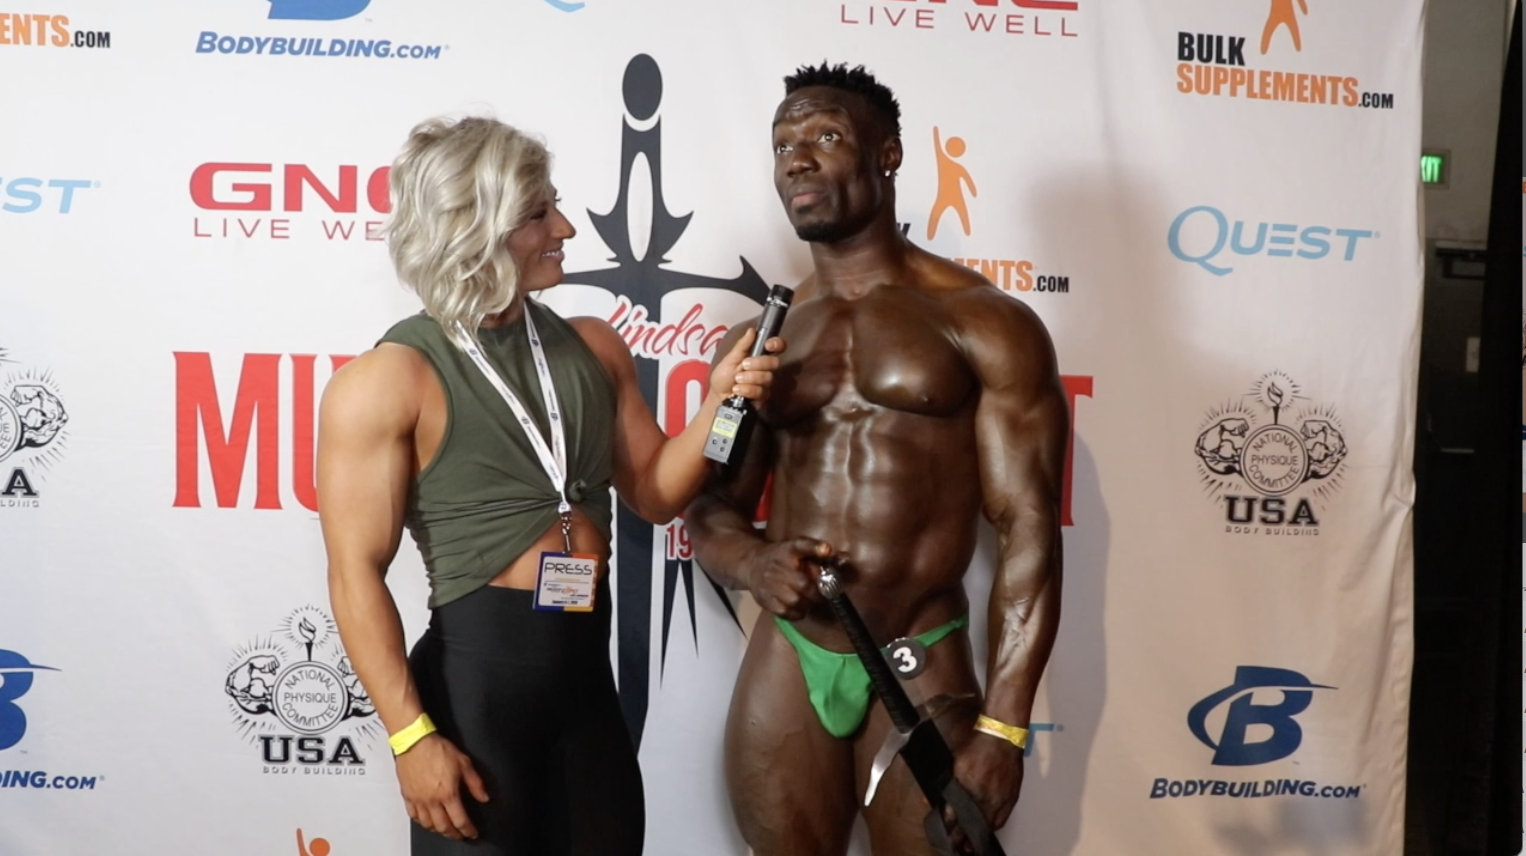 2018 NPC Muscle Contest Challenge Bodybuilding Winner Prince Bada Lekan Contest Video